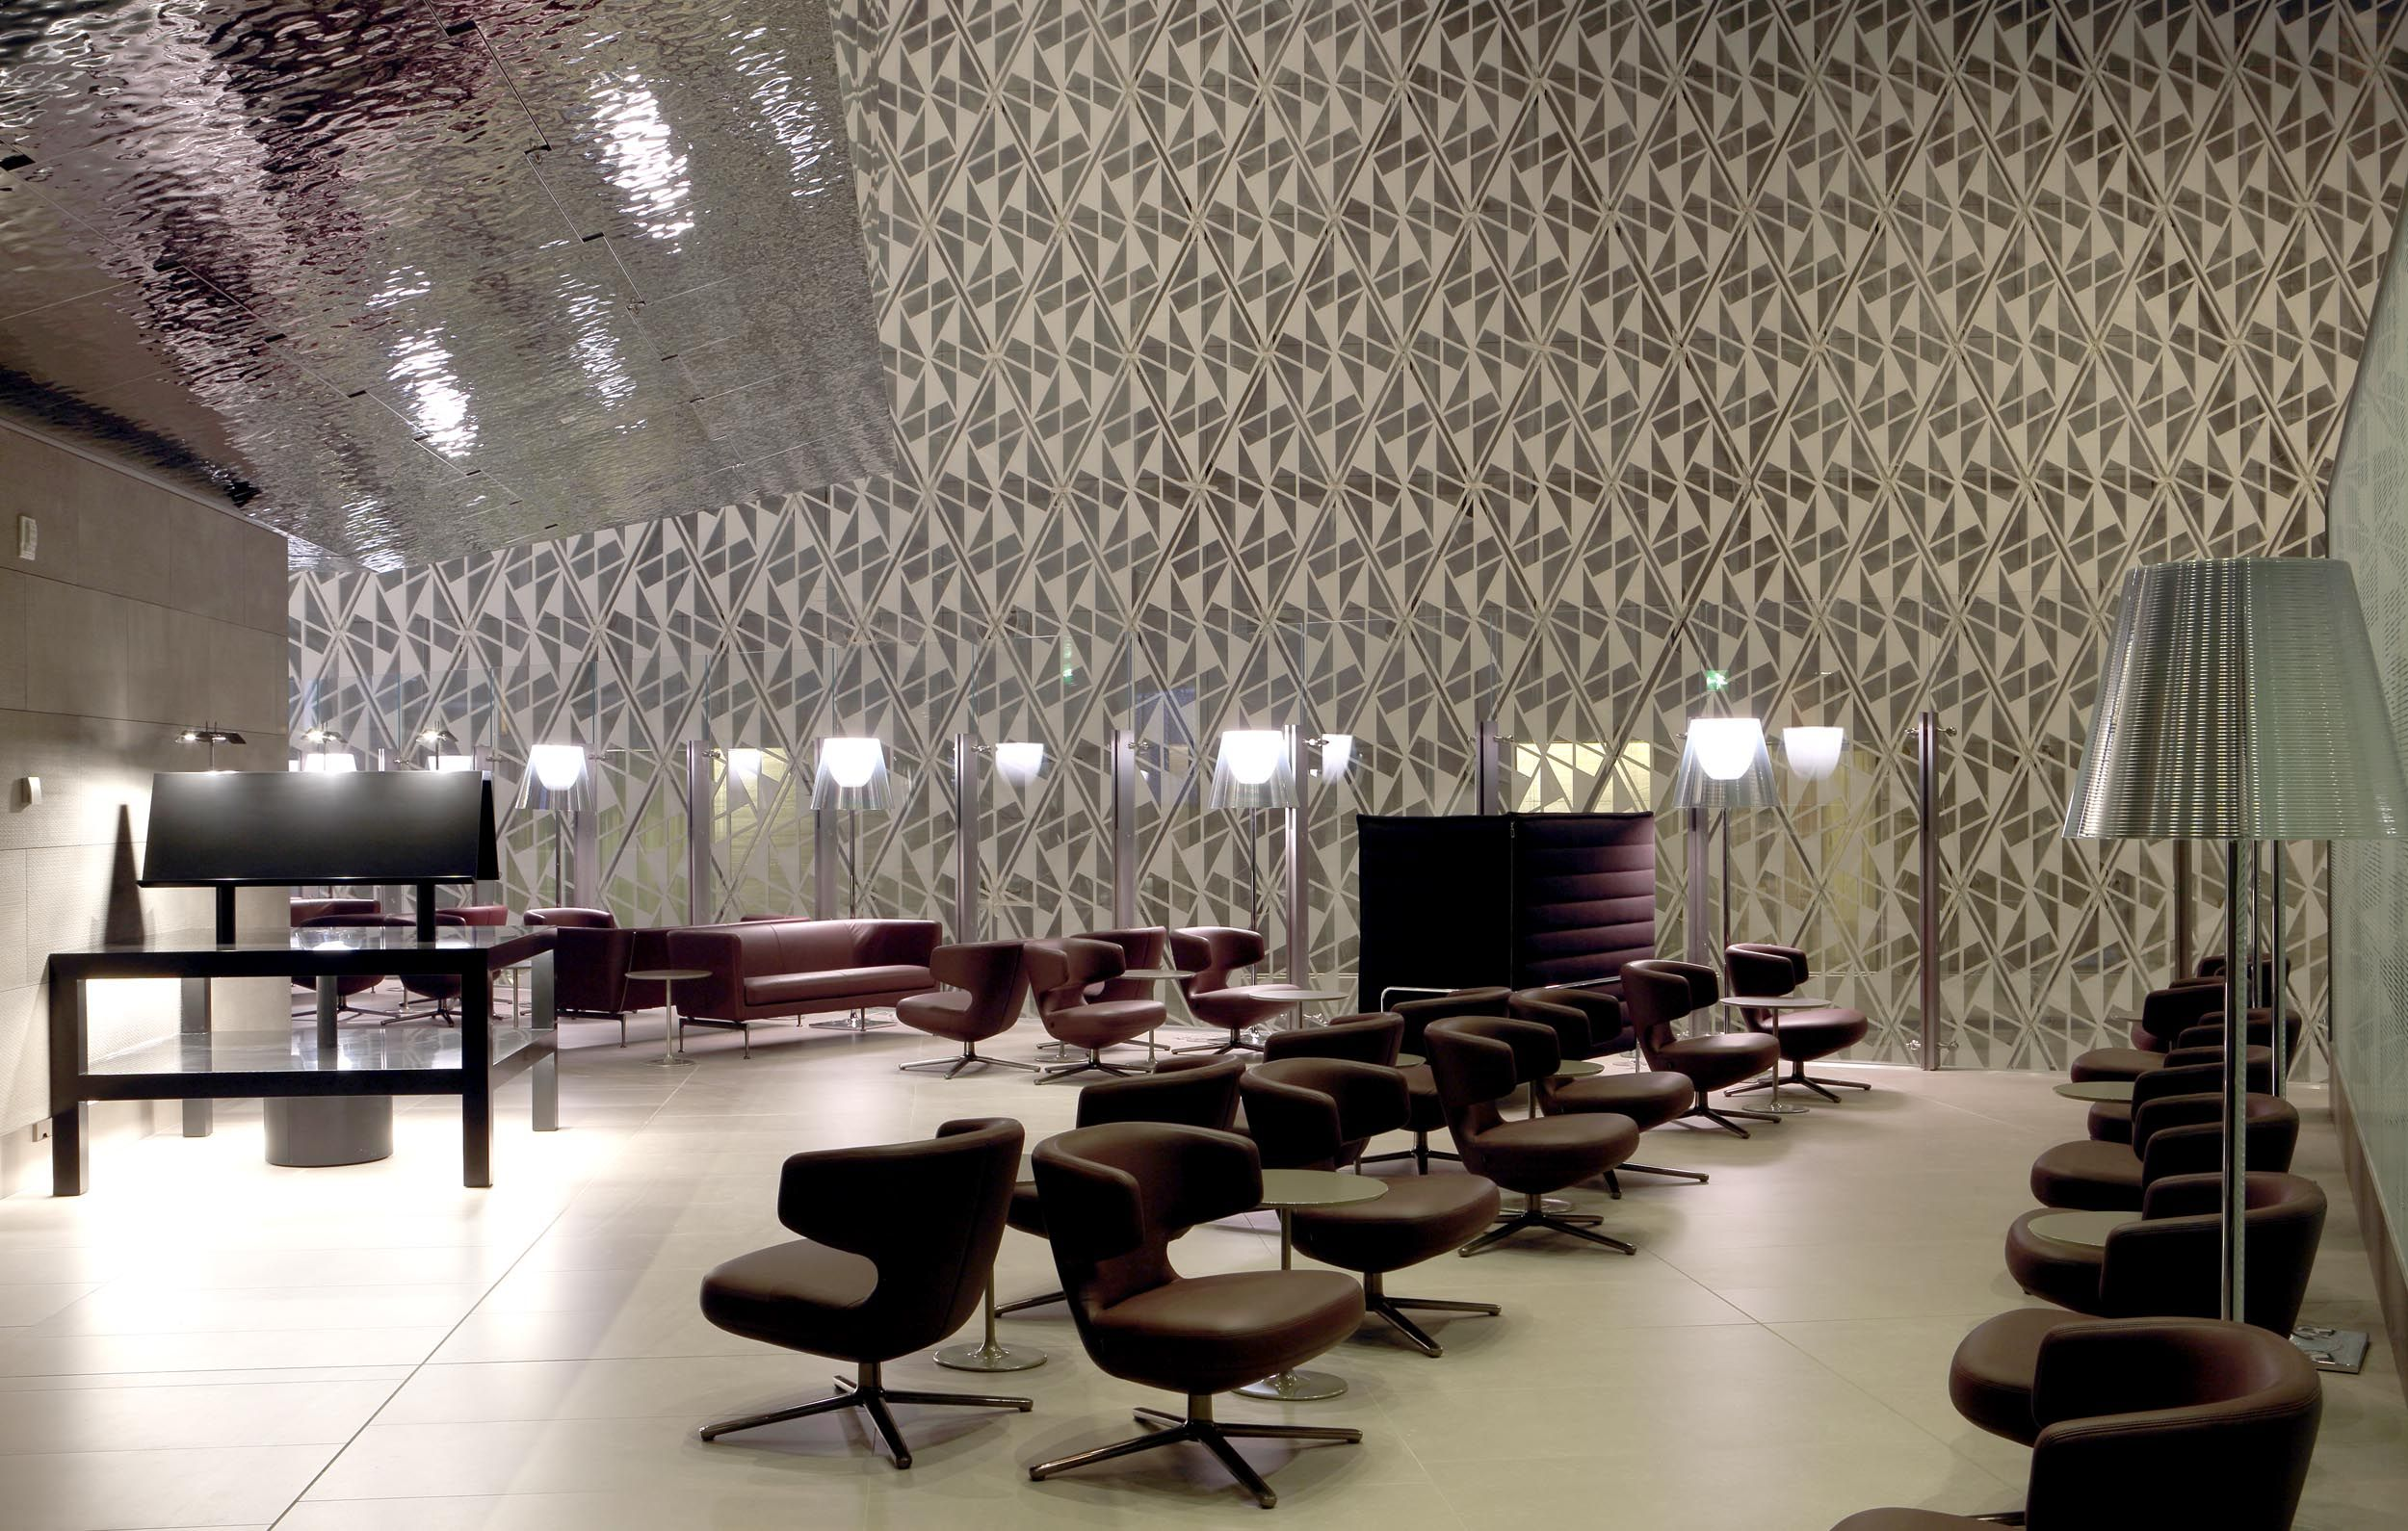 20+ Best Airport Lounges - Travel Tips And Advice